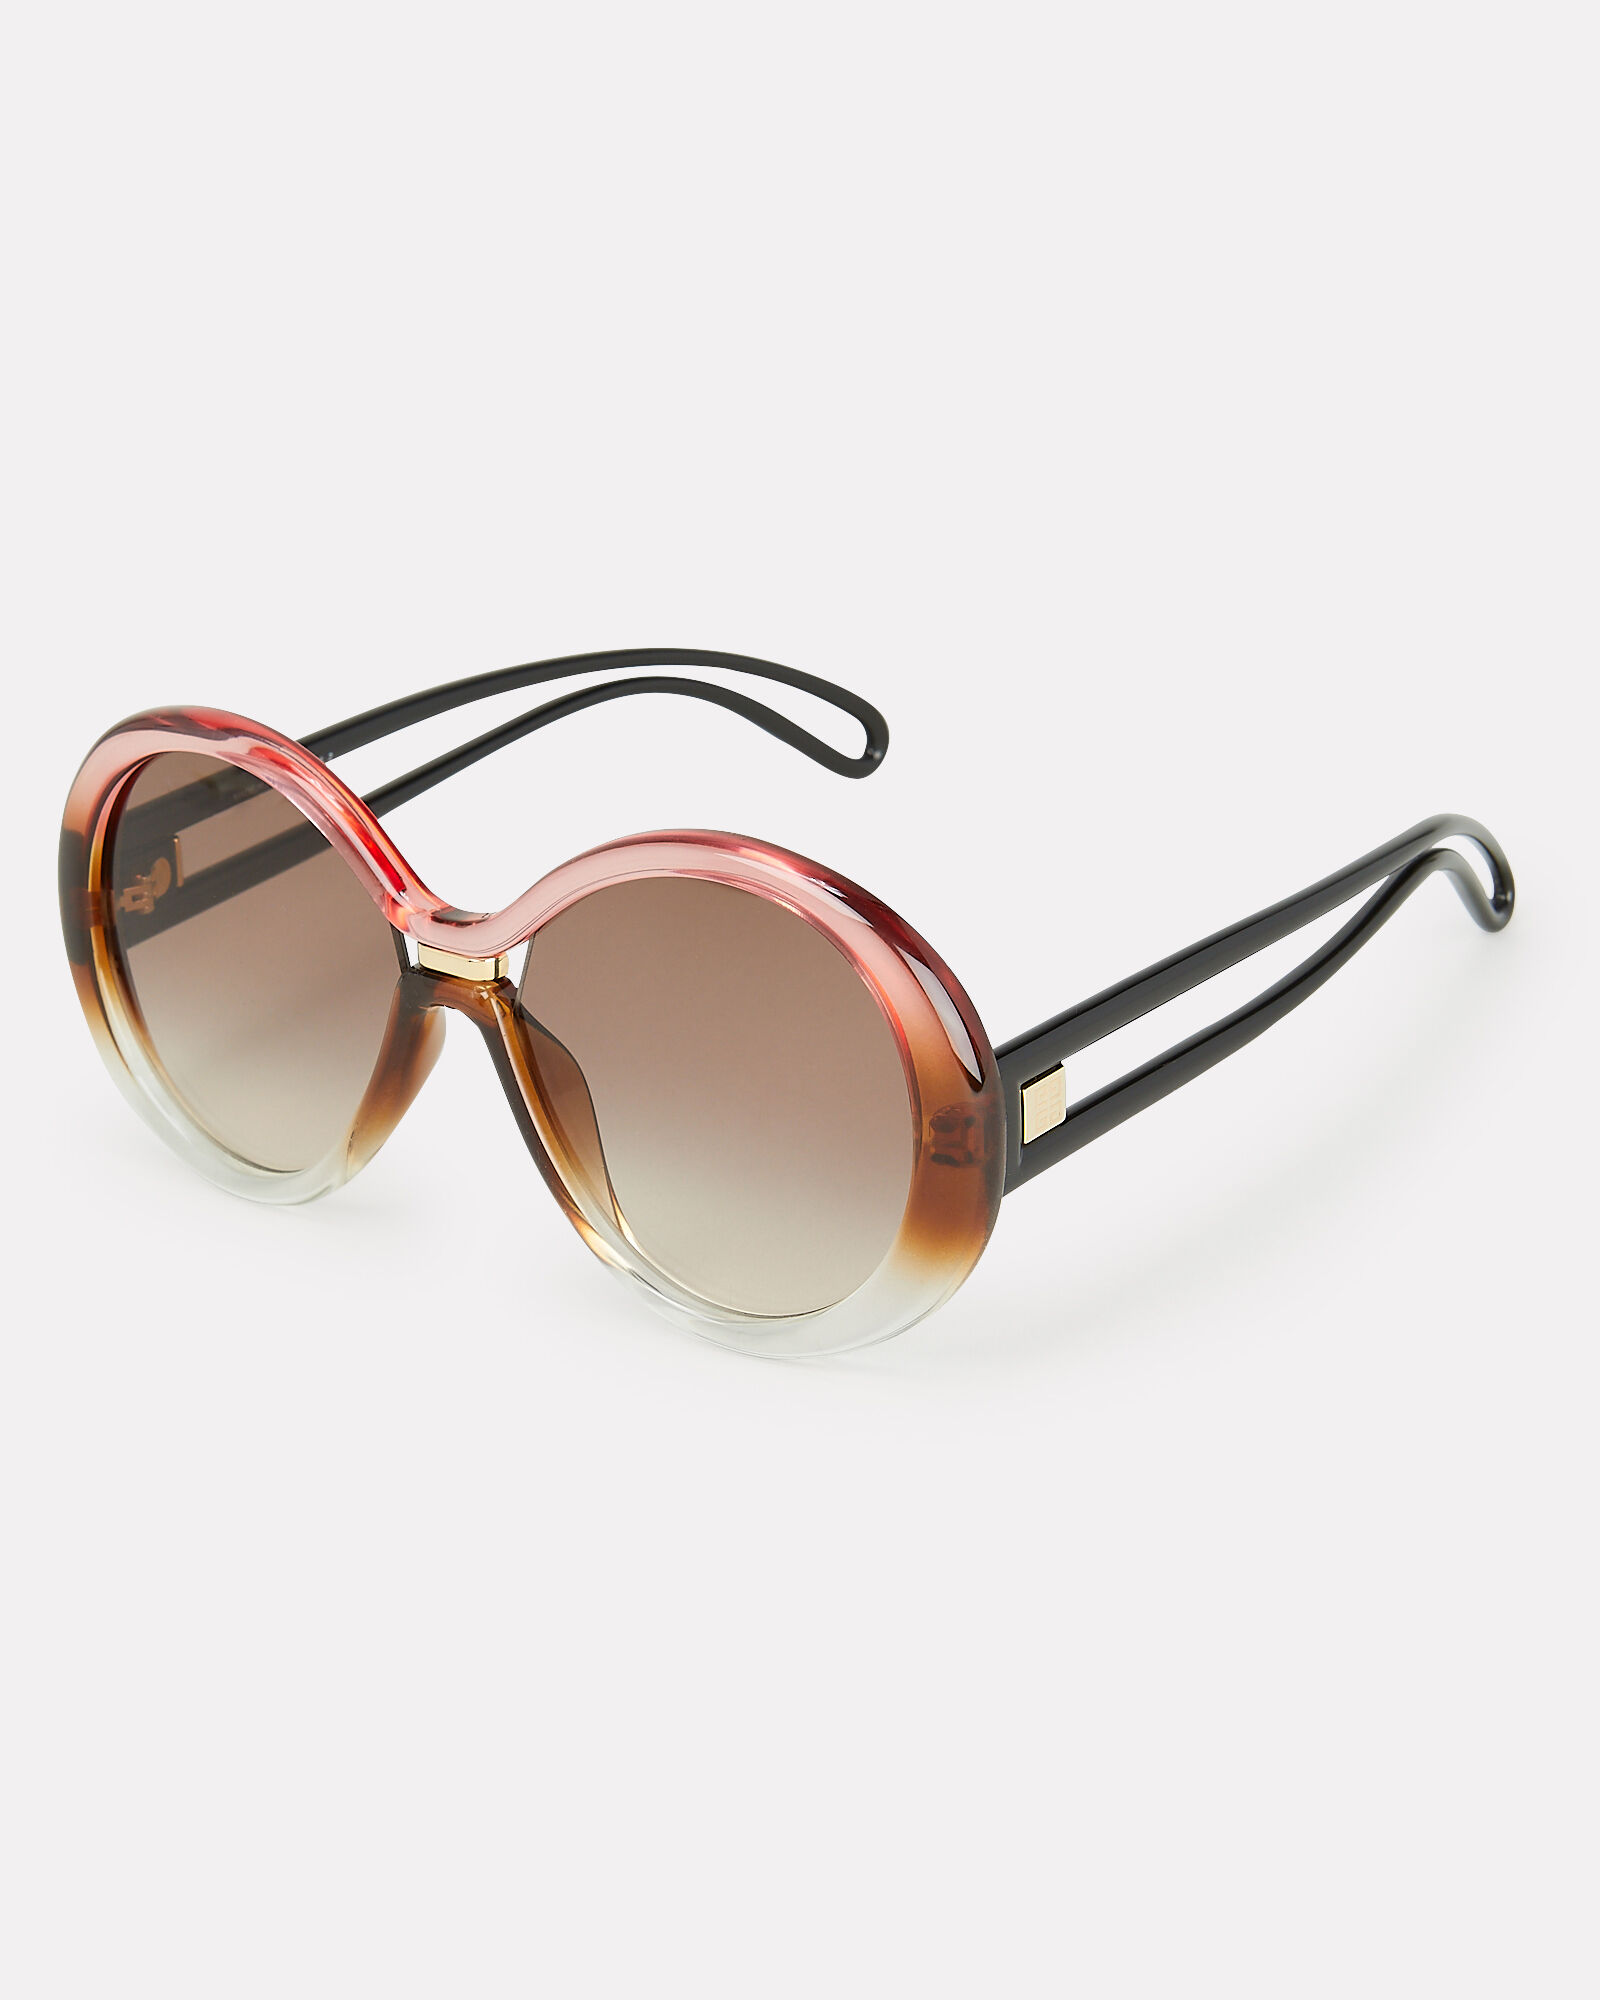 7105 Oversized Round Sunglasses, PINK, hi-res